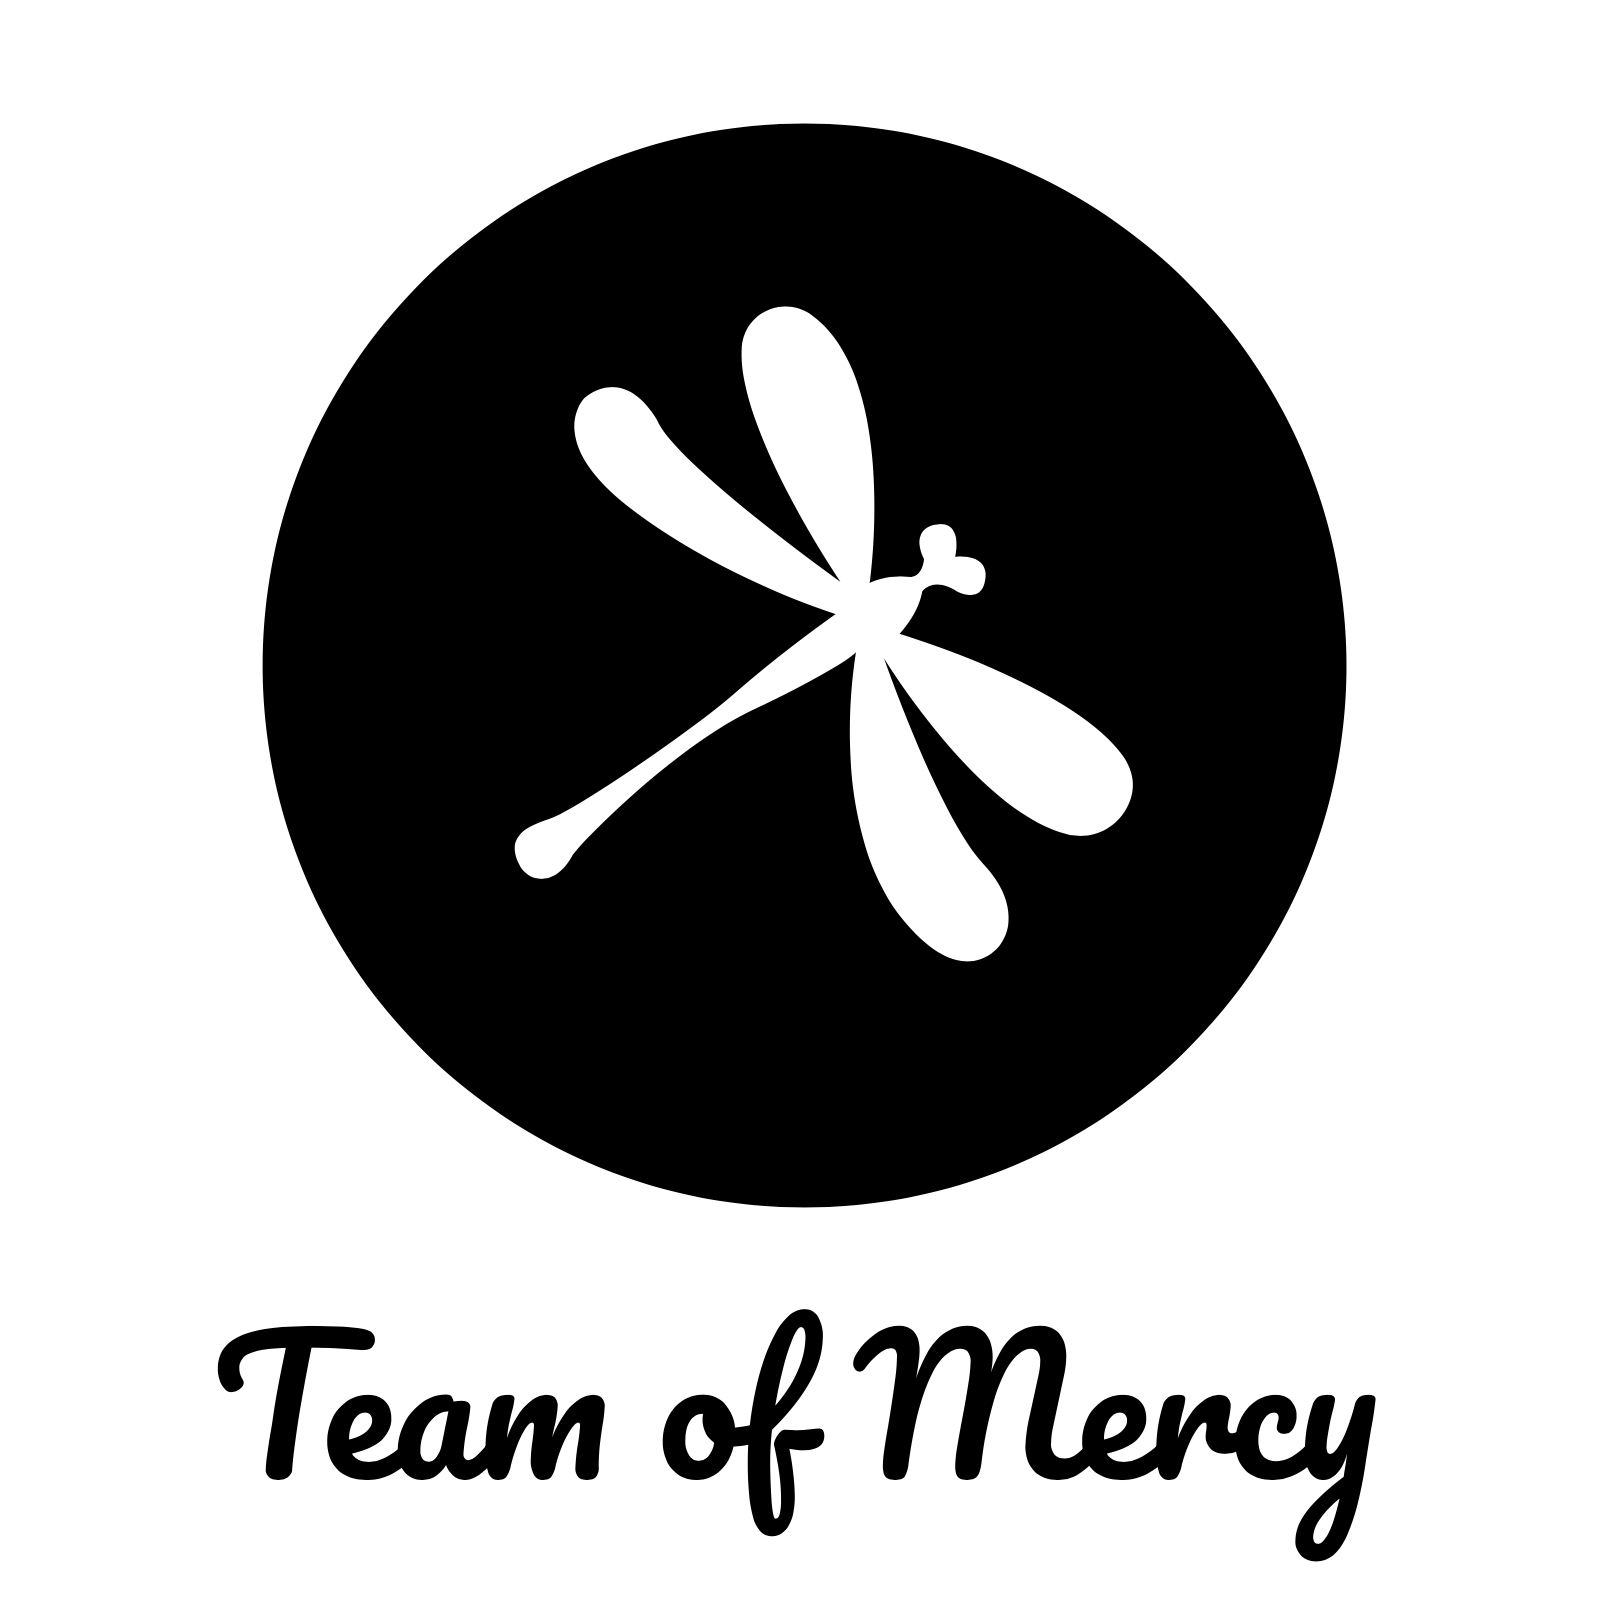 Team of Mercy to Hold Candle Light Vigil/Lantern Lighting Ceremony